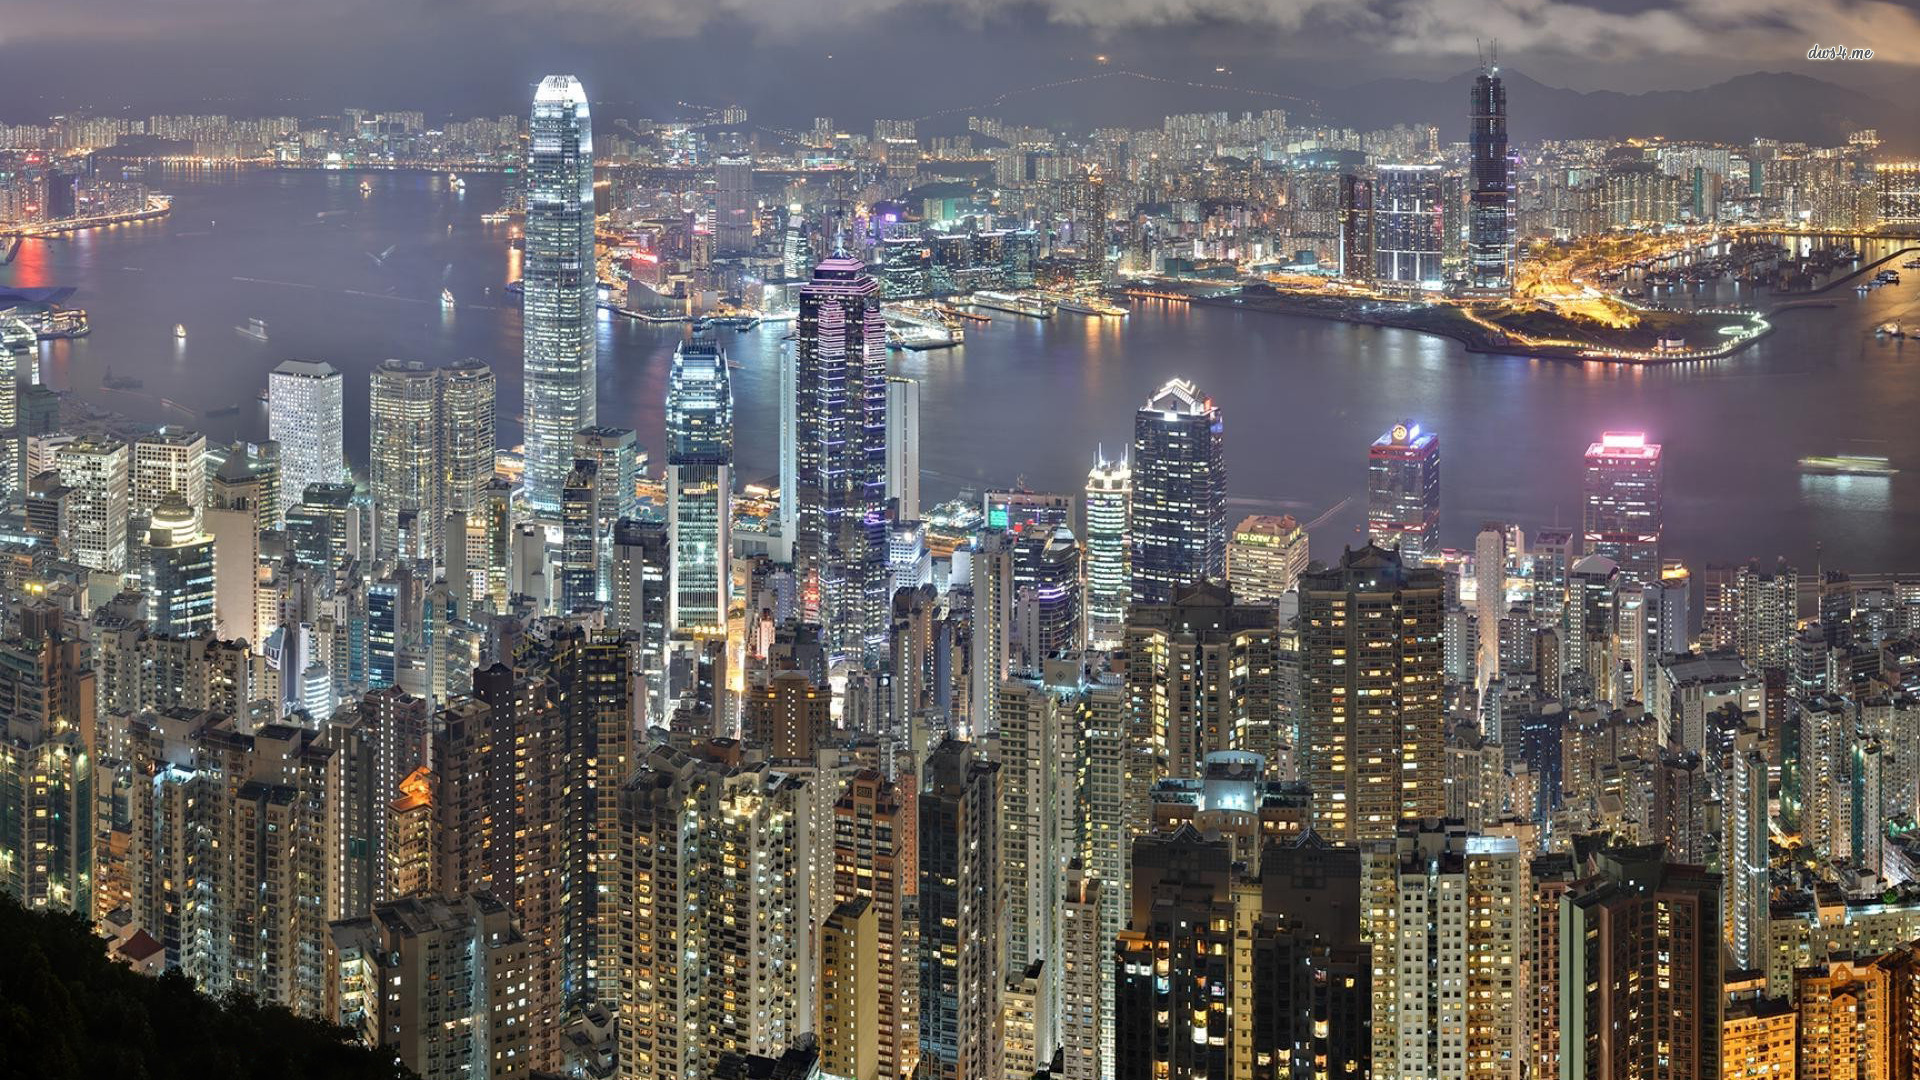 ... Hong Kong skyline wallpaper 1920x1080 ...